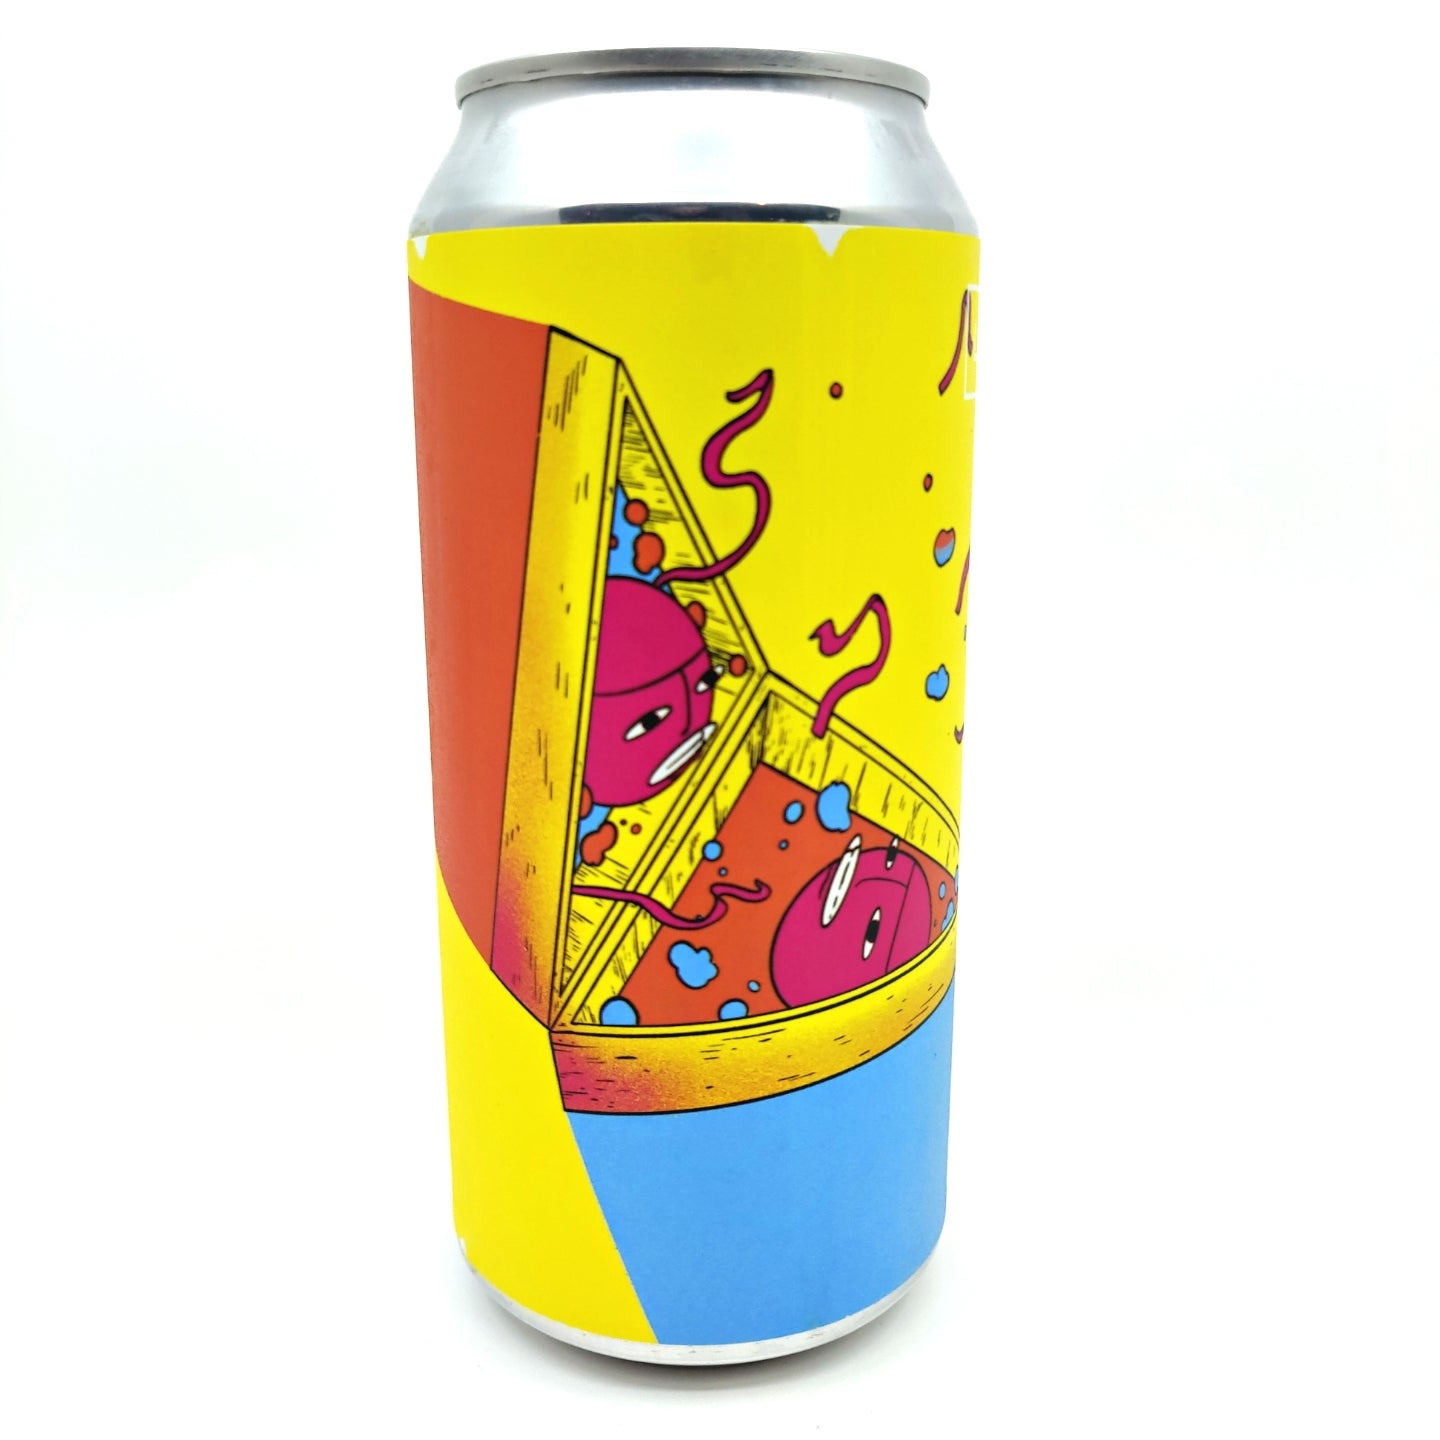 Left Handed Giant Every Single Thing Sour IPA w/ Passionfruit 5.8% (440ml can)-Hop Burns & Black